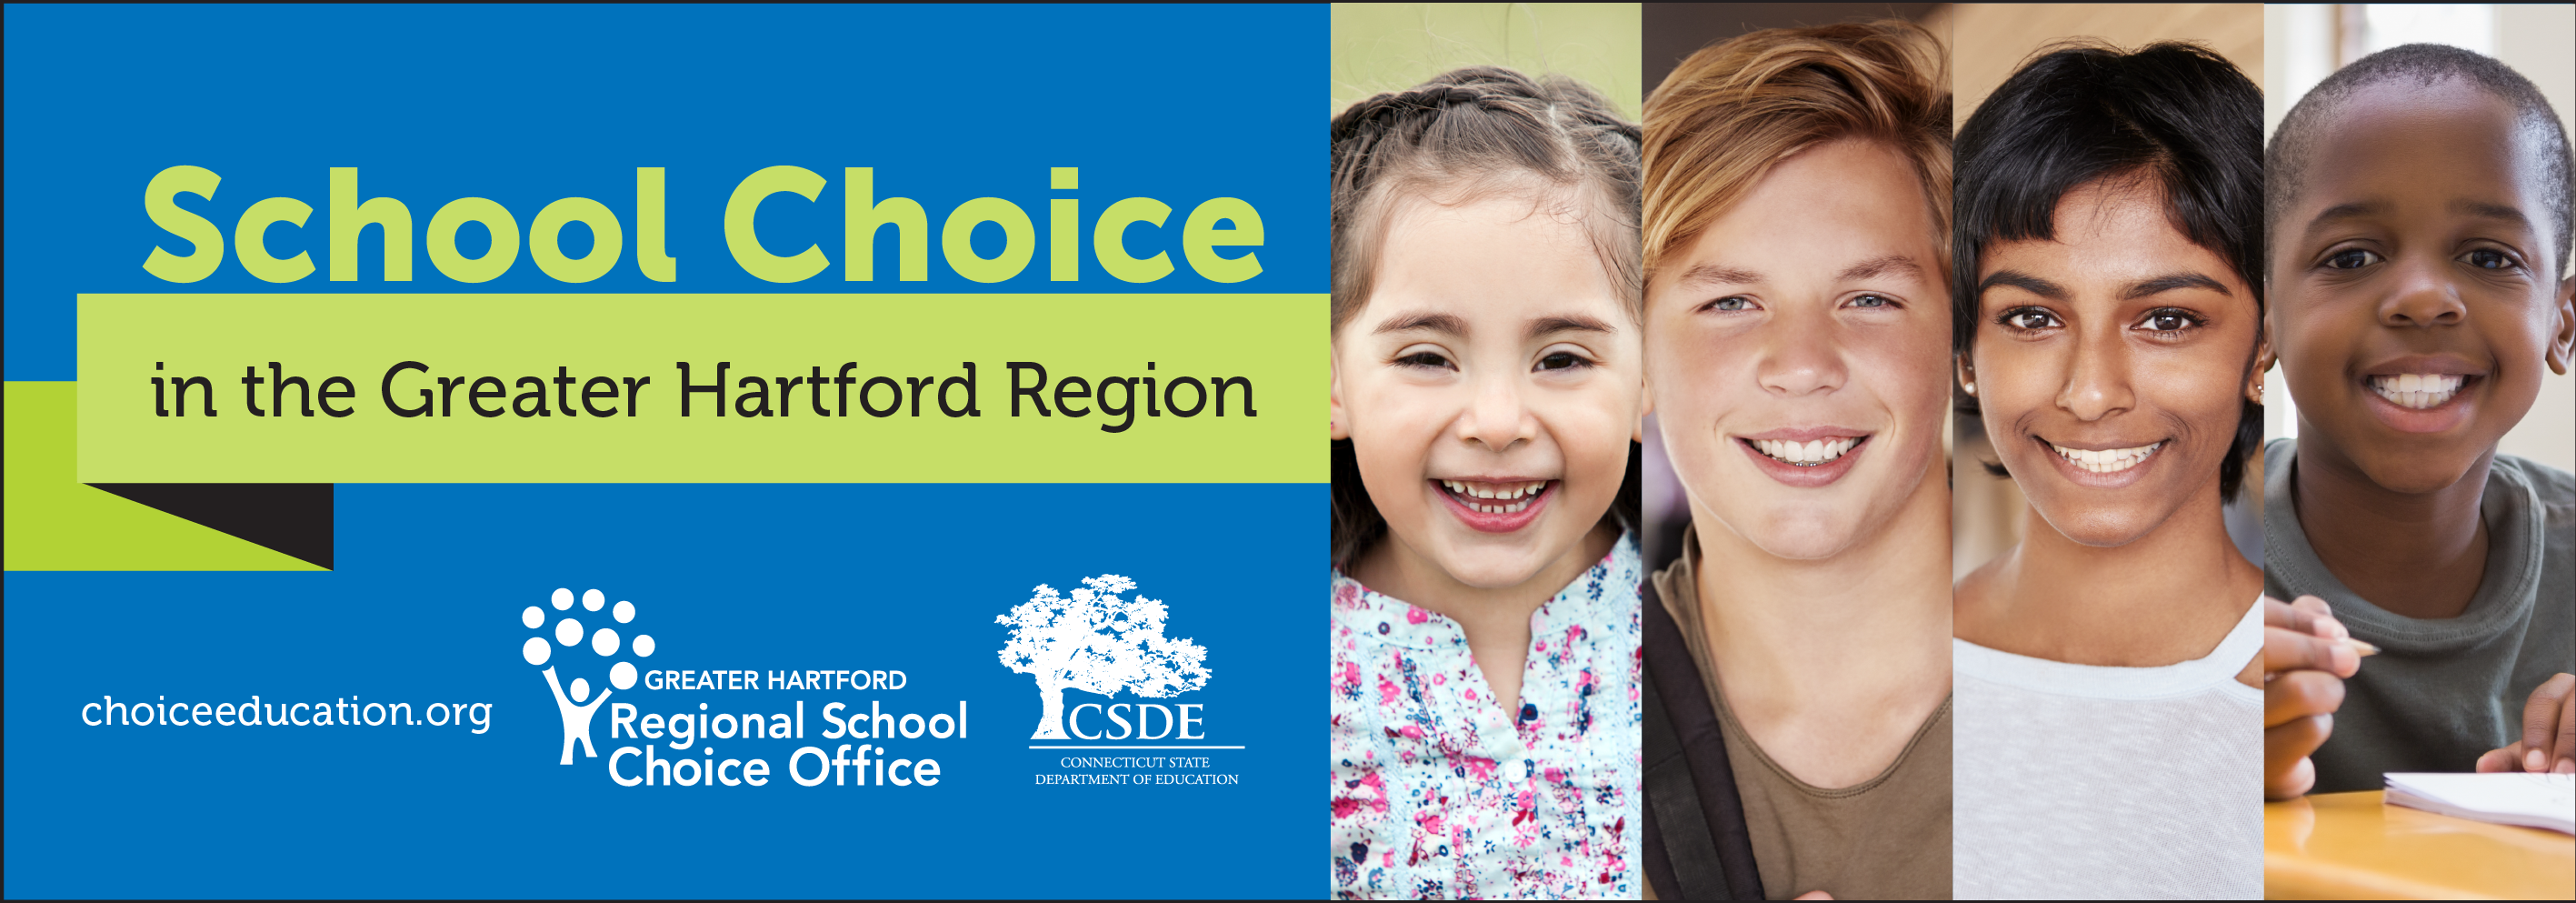 RCSO school choice banner for 2020